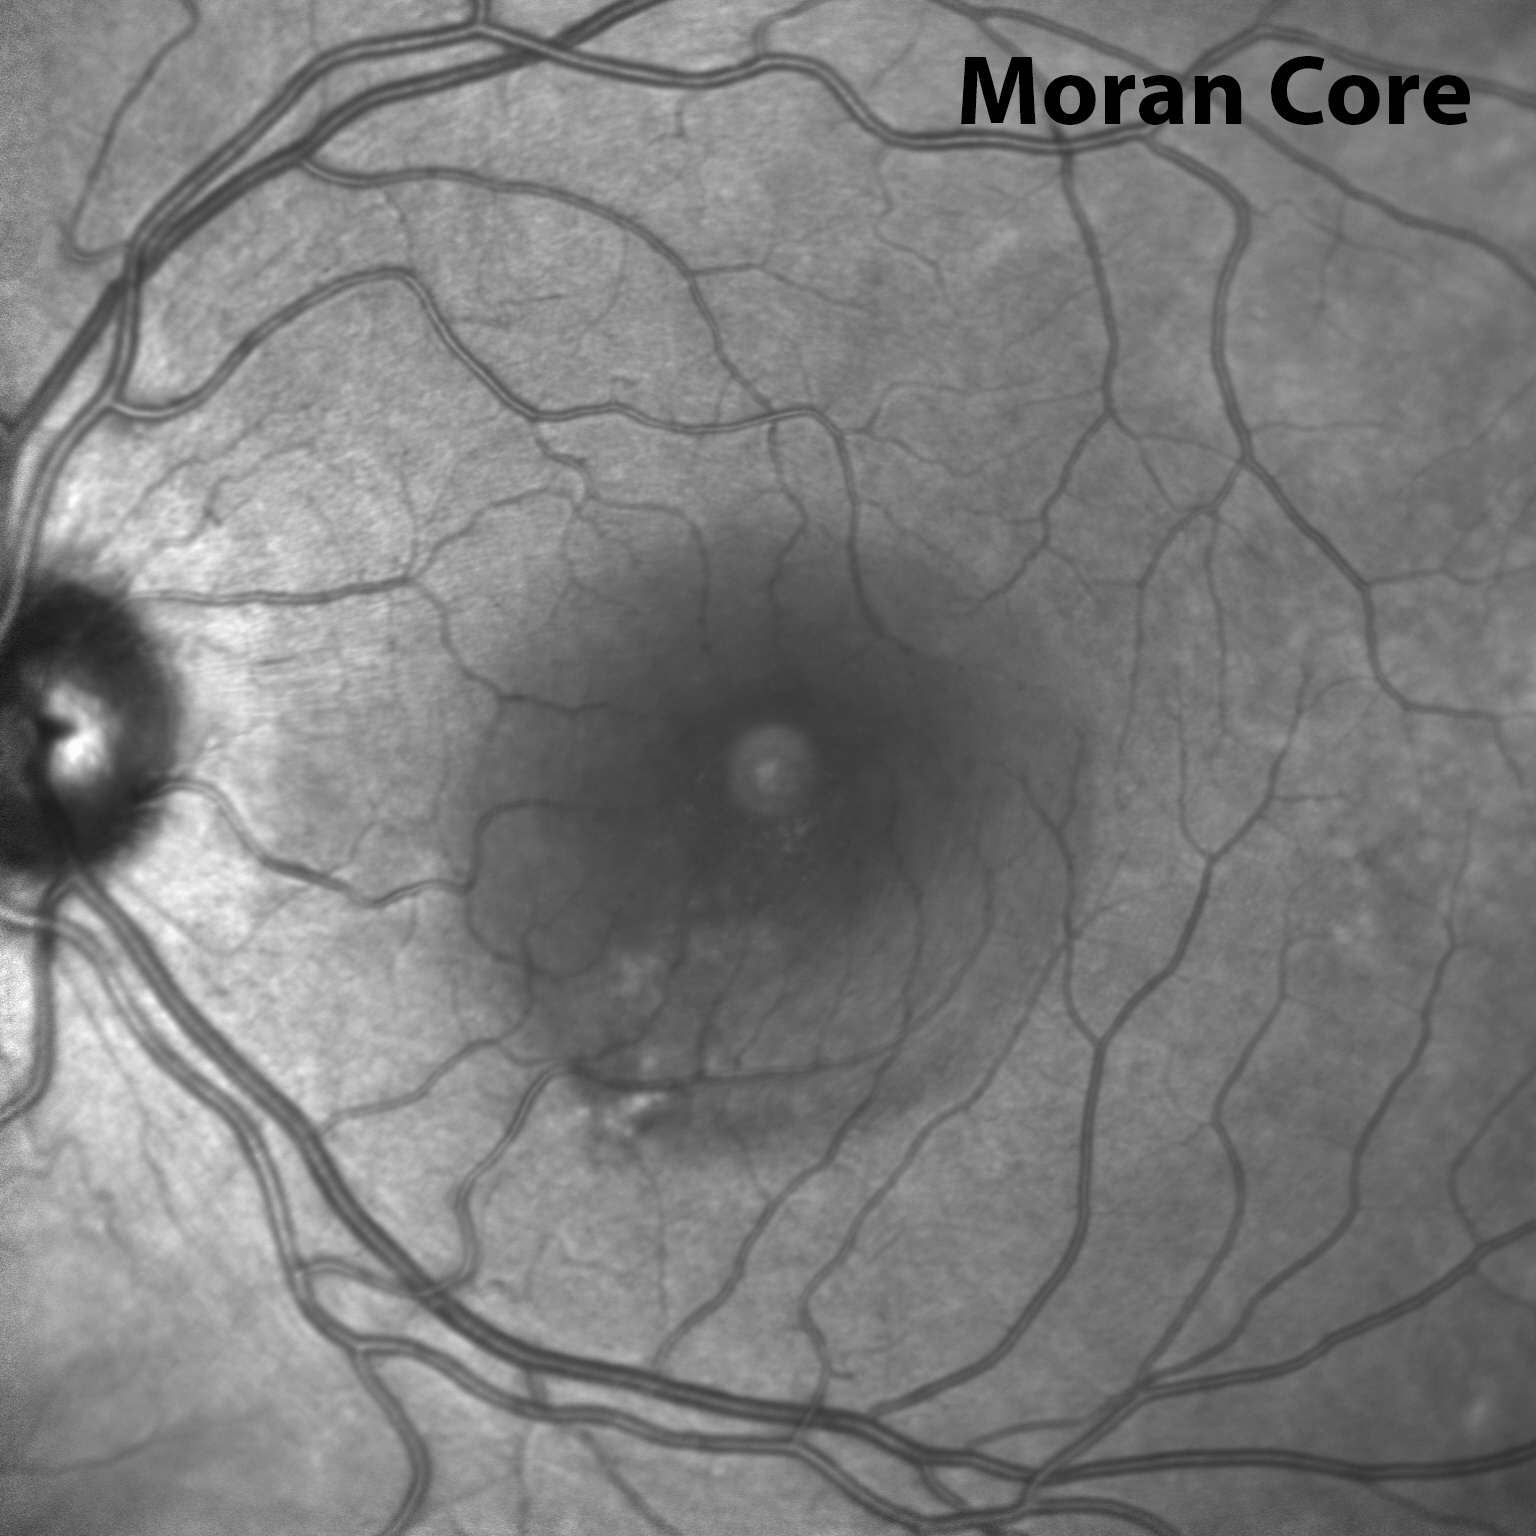 Figure 4: Left eye infrared image showing a hyporeflective area in the central macula corresponding to the area of subretinal fluid.